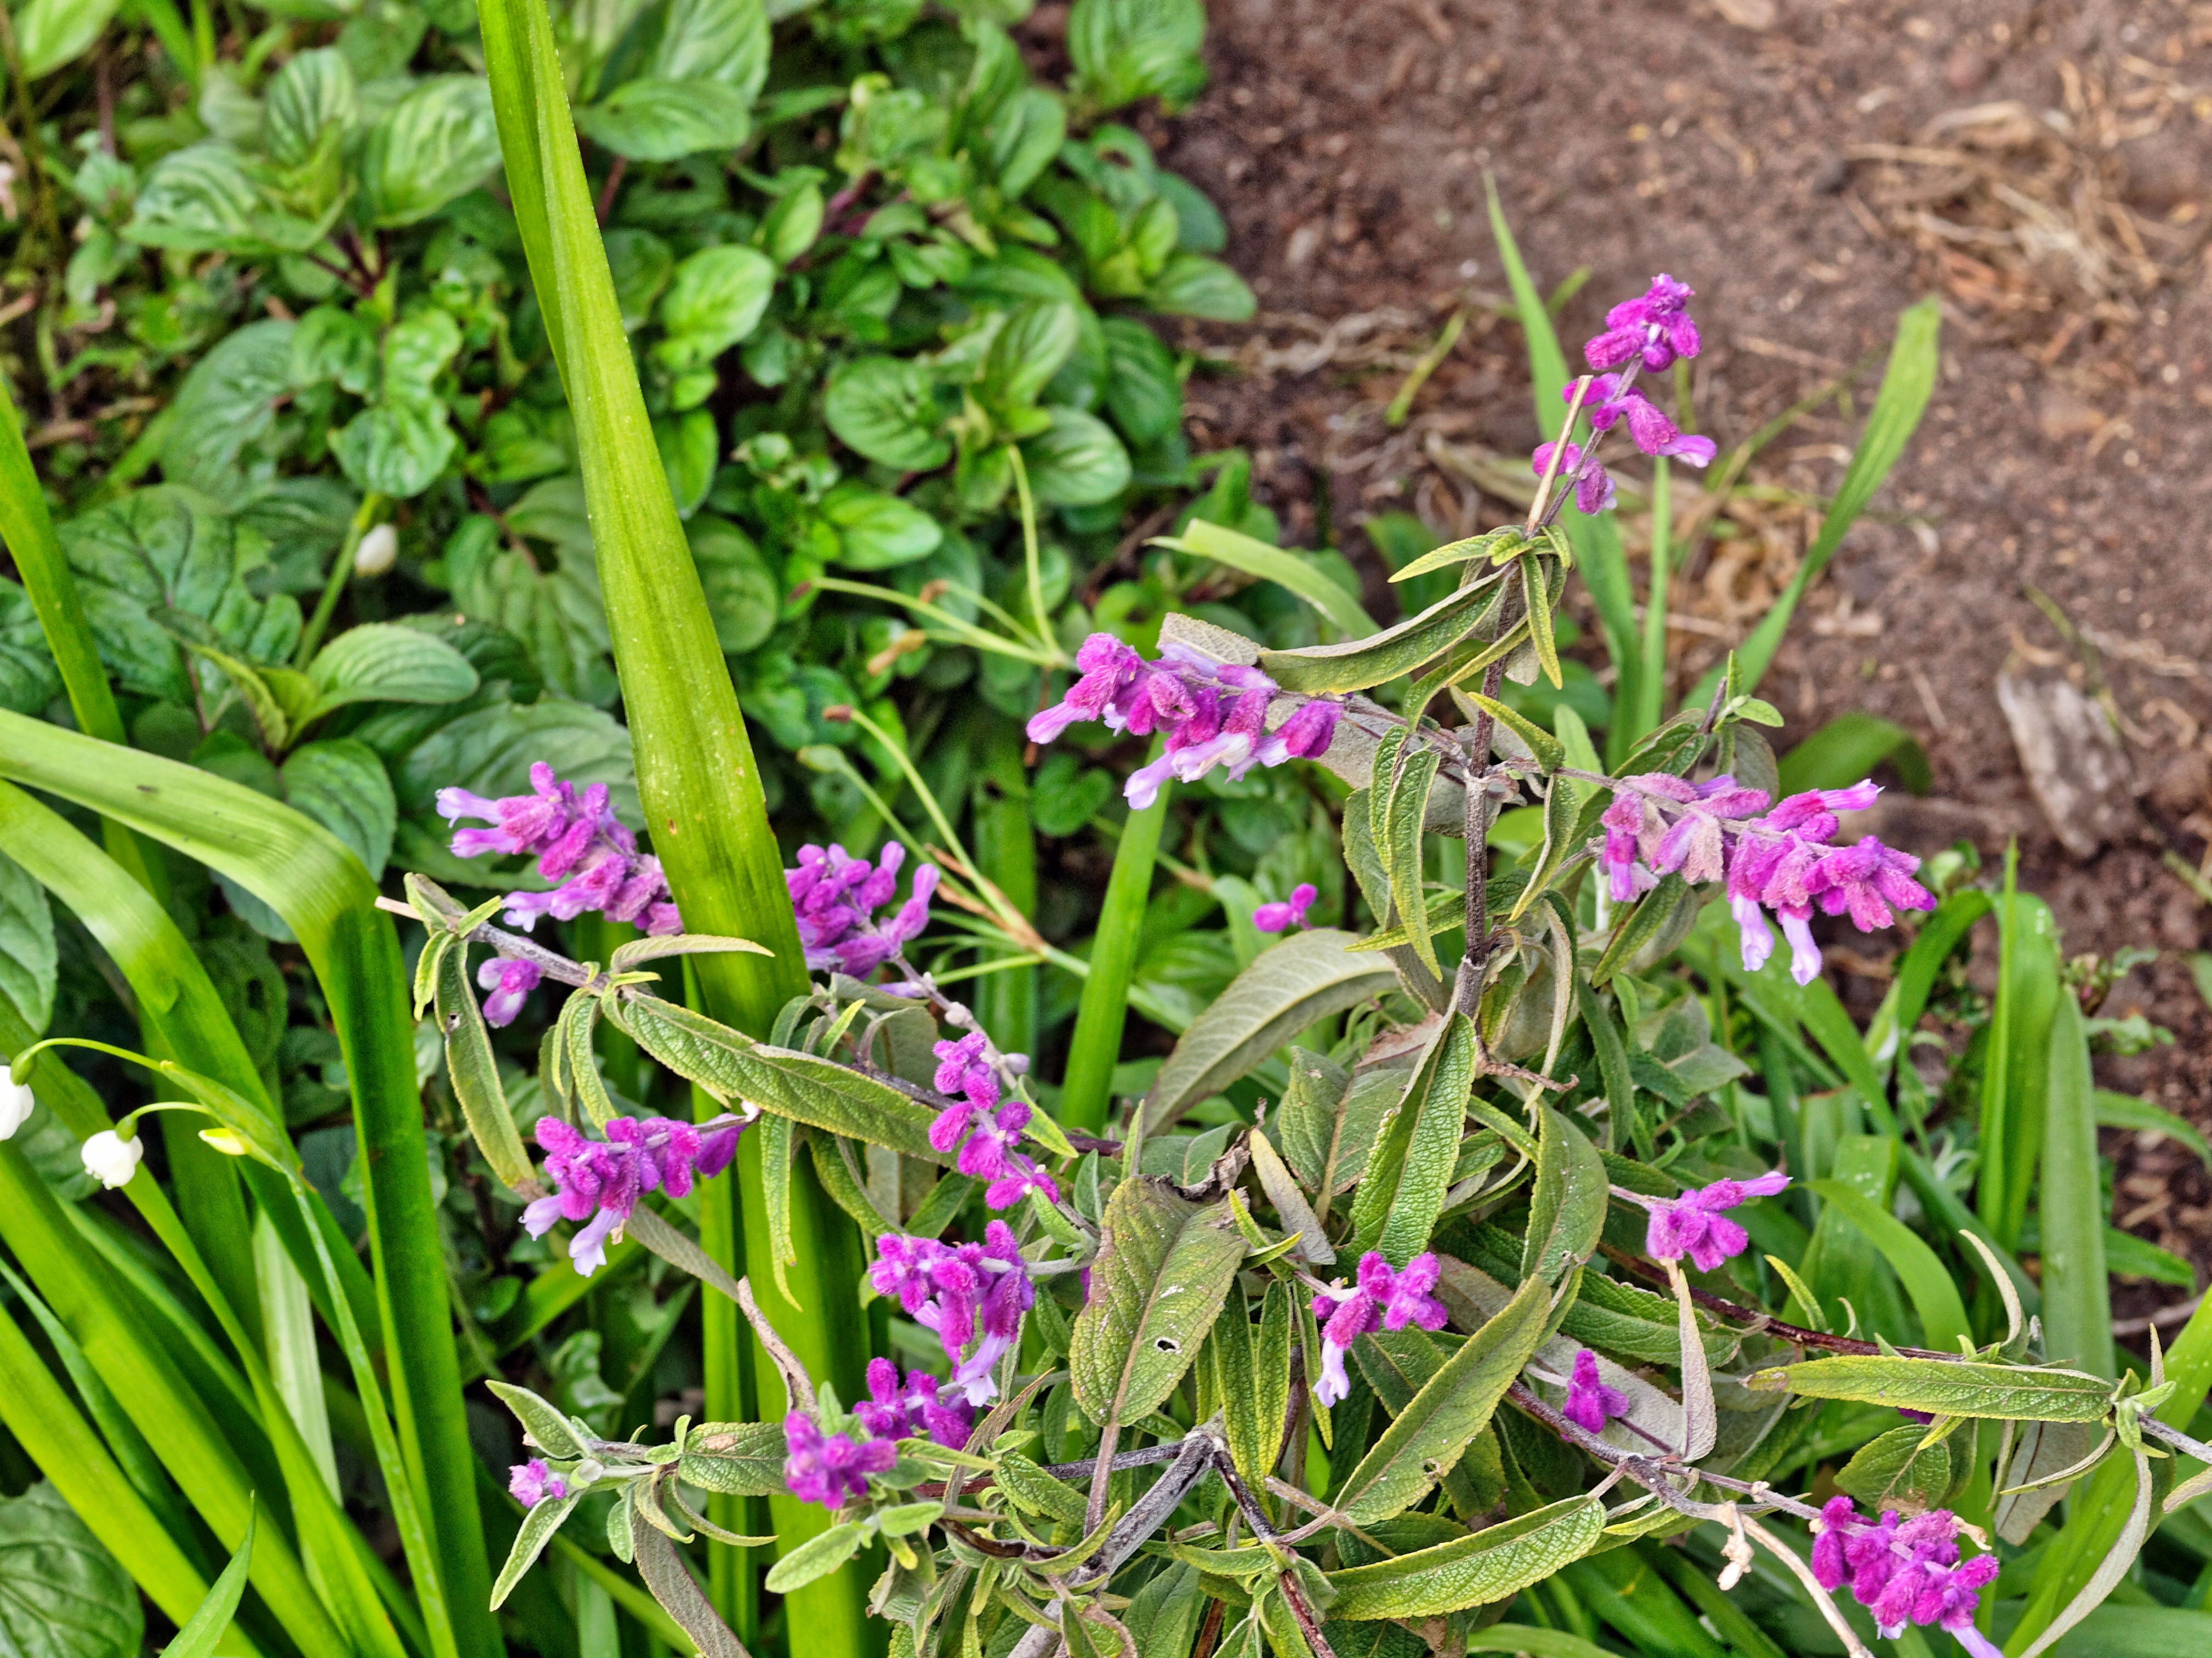 This should be Salvia-leucantha.jpeg.  Is it missing?